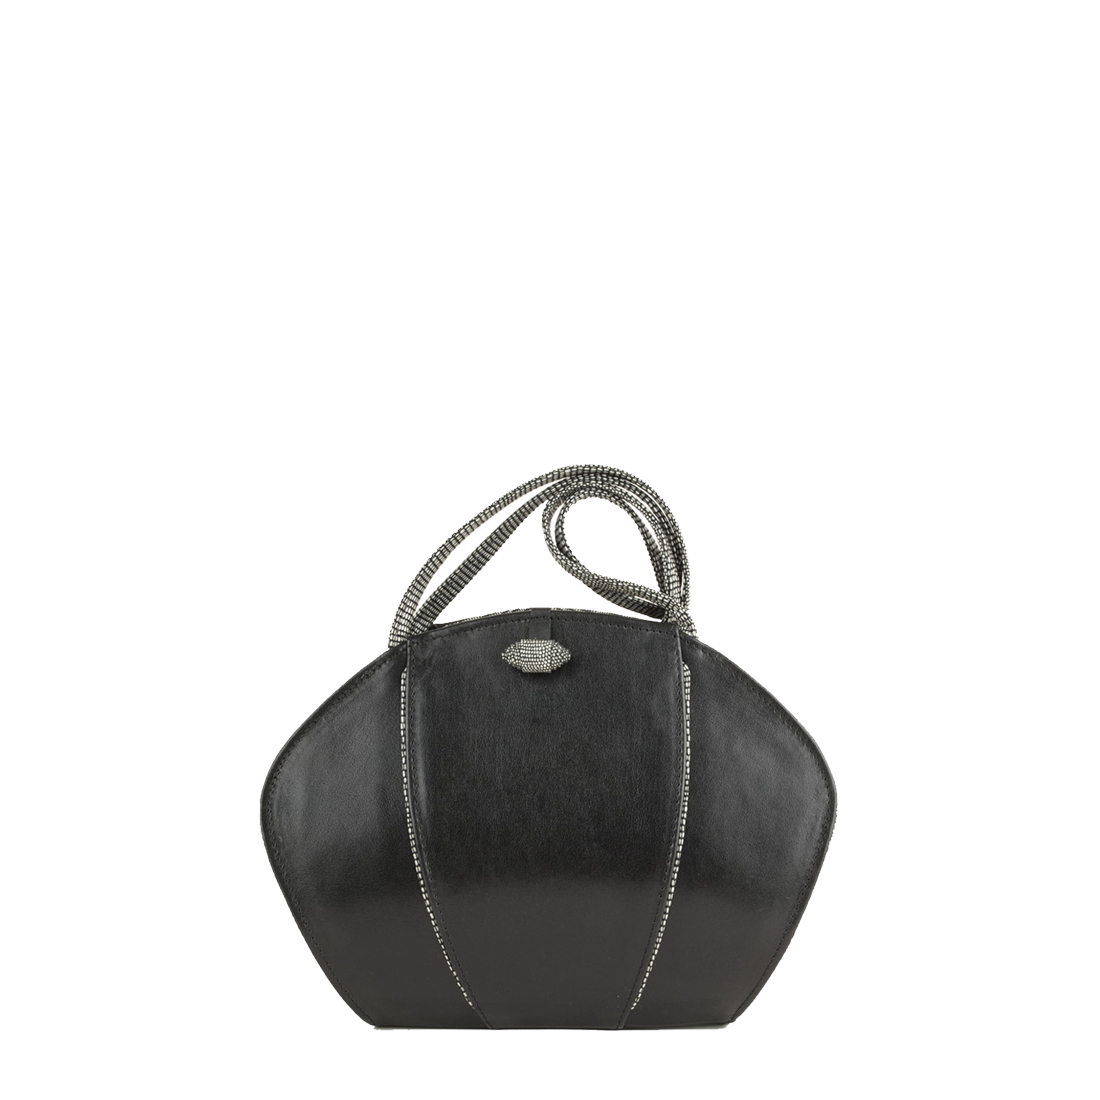 Lola Black Leather Shoulder Bag